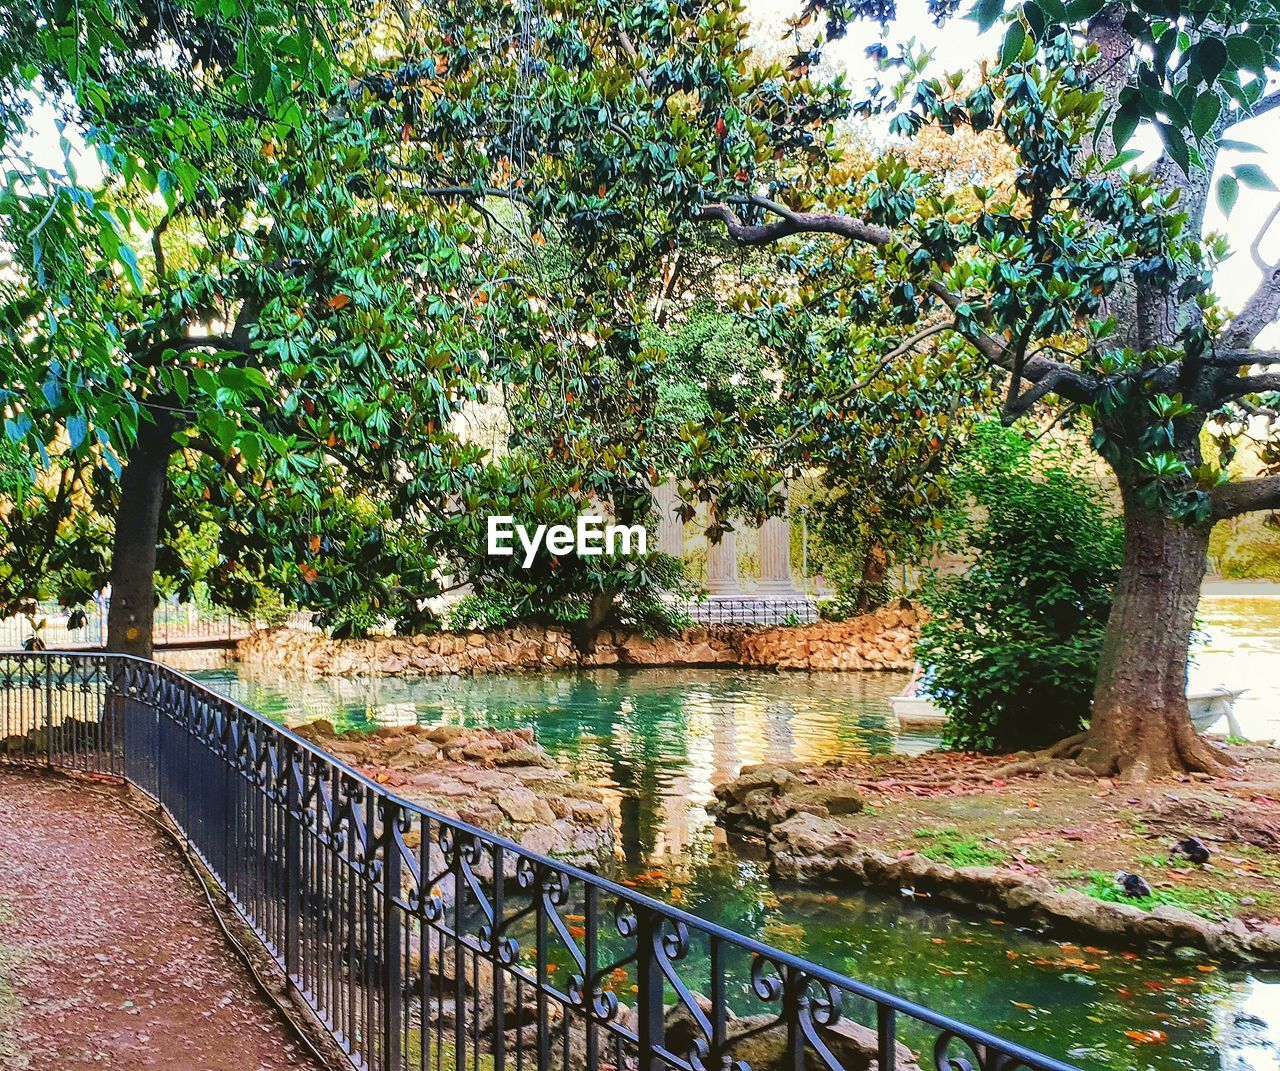 tree, plant, growth, nature, water, architecture, built structure, day, no people, railing, green color, outdoors, branch, river, park, connection, bridge, beauty in nature